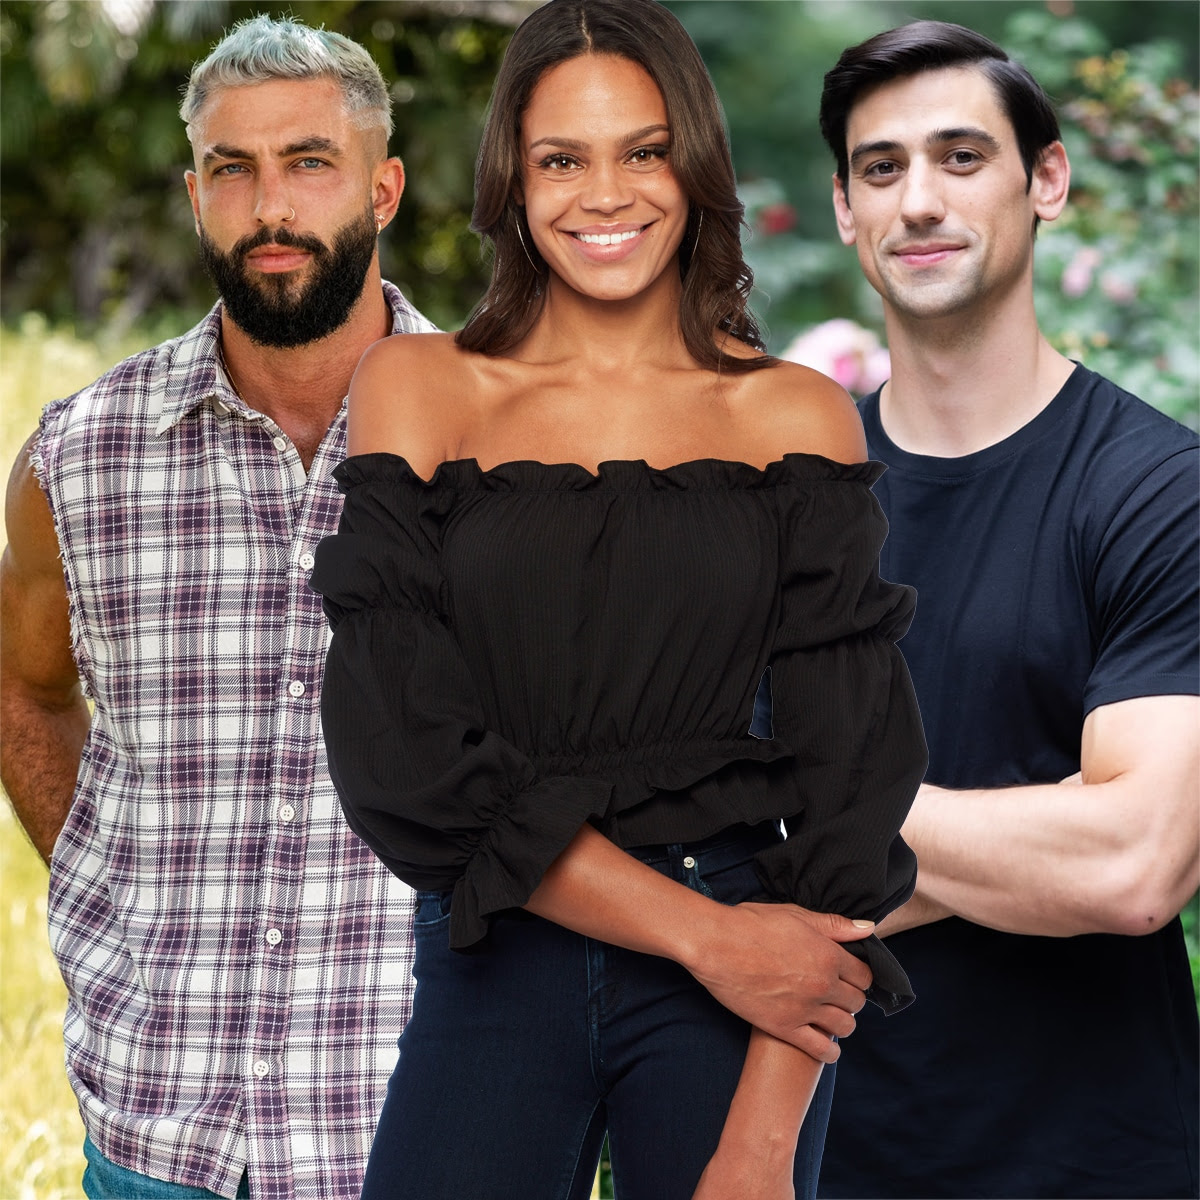 Is This ABC's New Bachelor? See the Photos That Might Hold the Answer